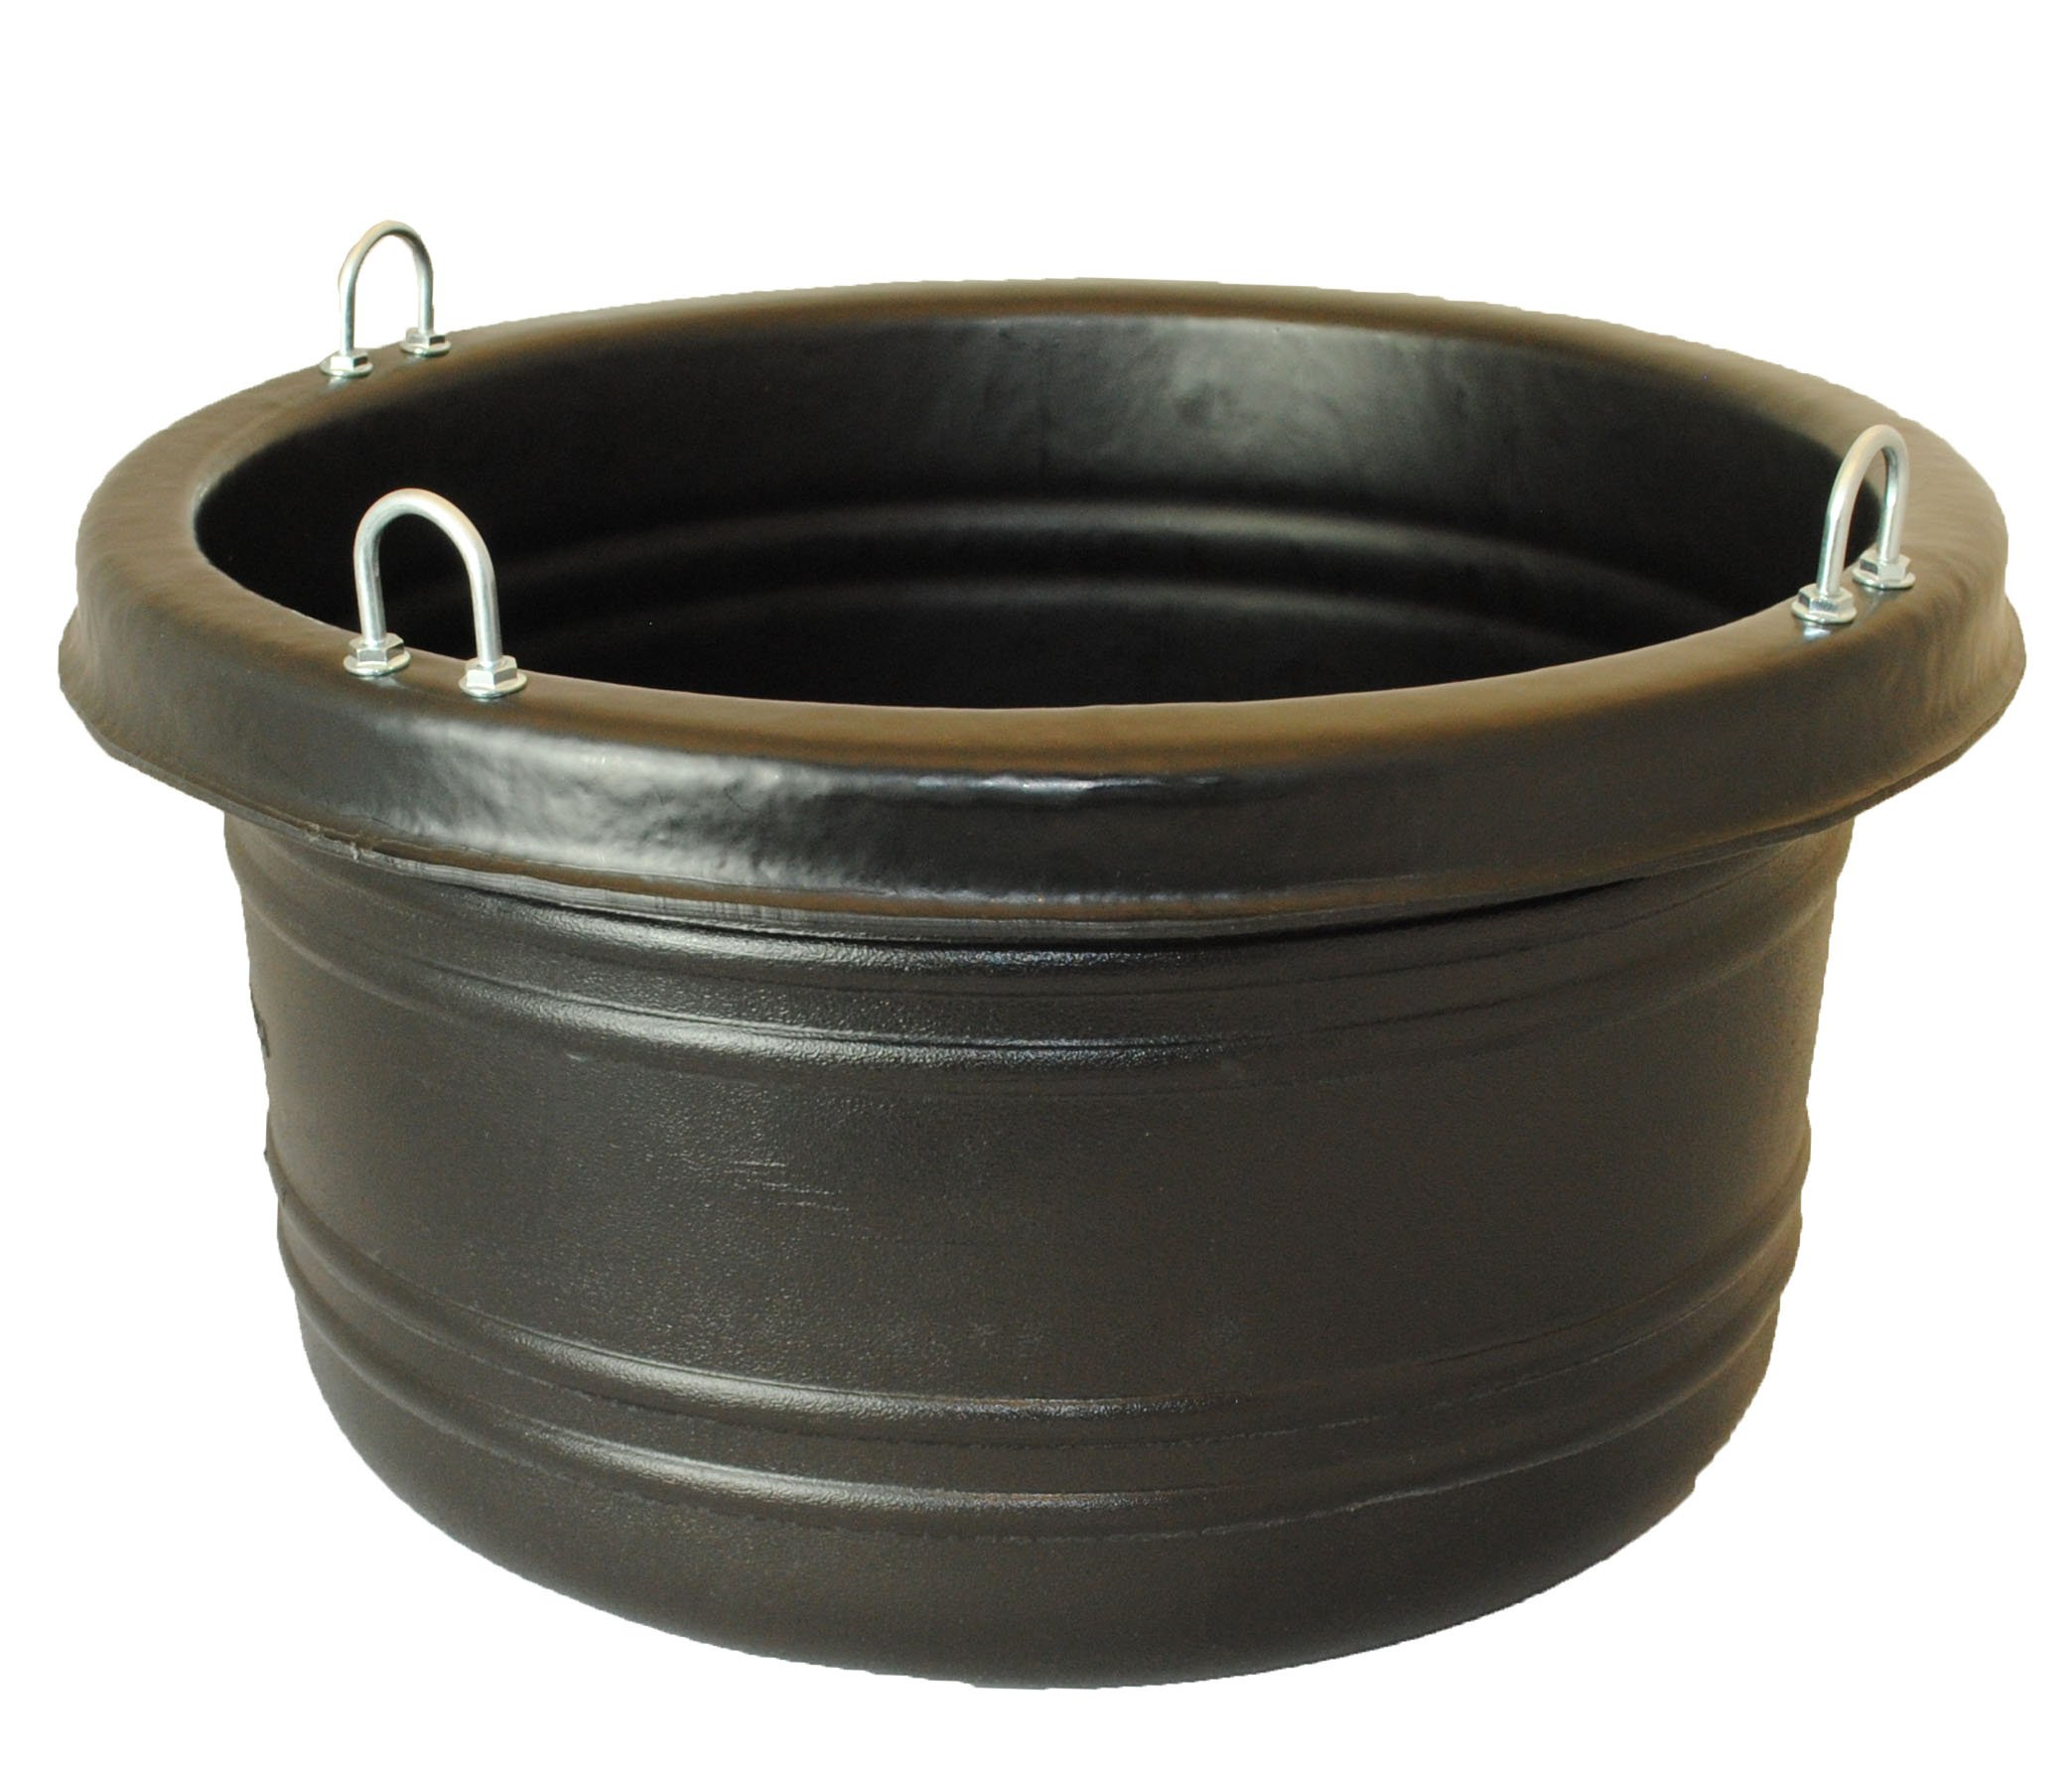 Horsemen's Pride 30 Quart Feed Tub, Black by Horsemen's Pride